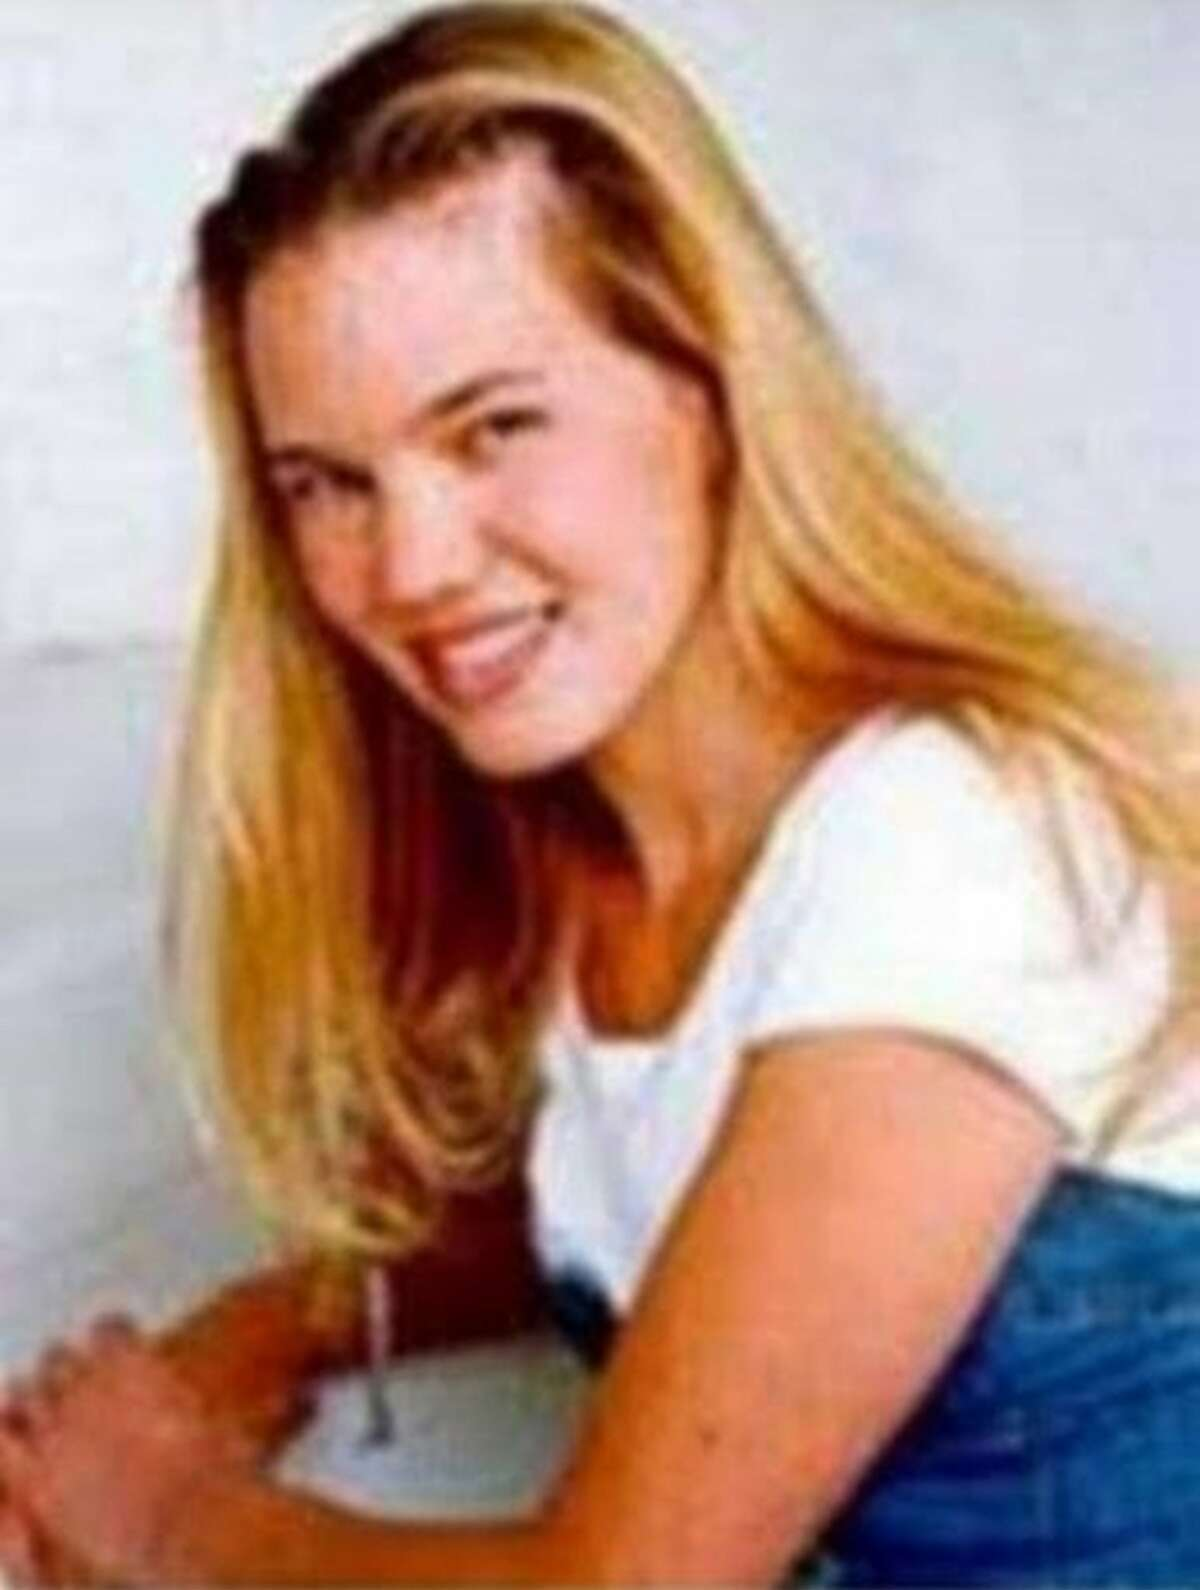 Kristin Smart, a first-year Cal Poly student, disappeared in 1996.